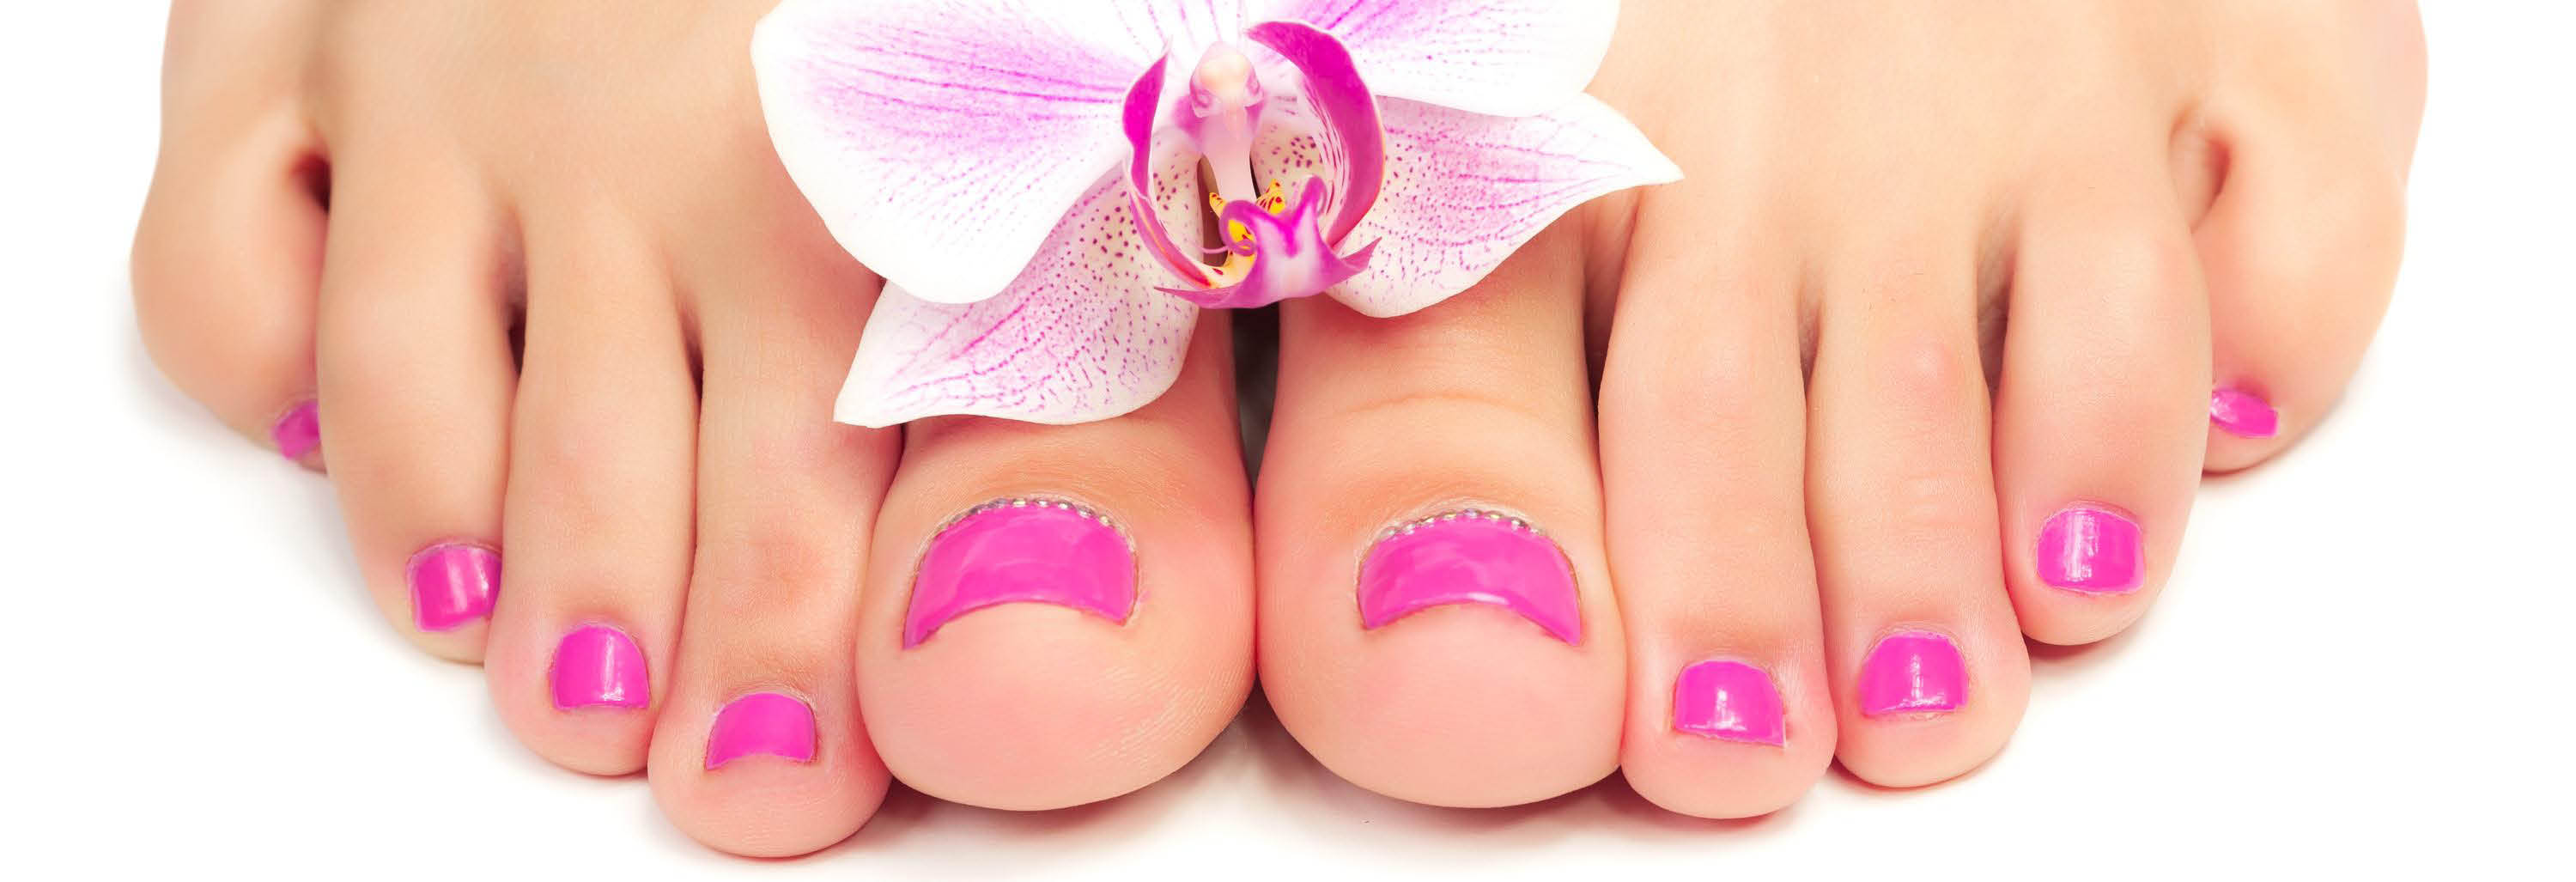 sunshine nails, nails, spa, valpak, coupon, gel nails, eyelash extensions, waxing, pedicure